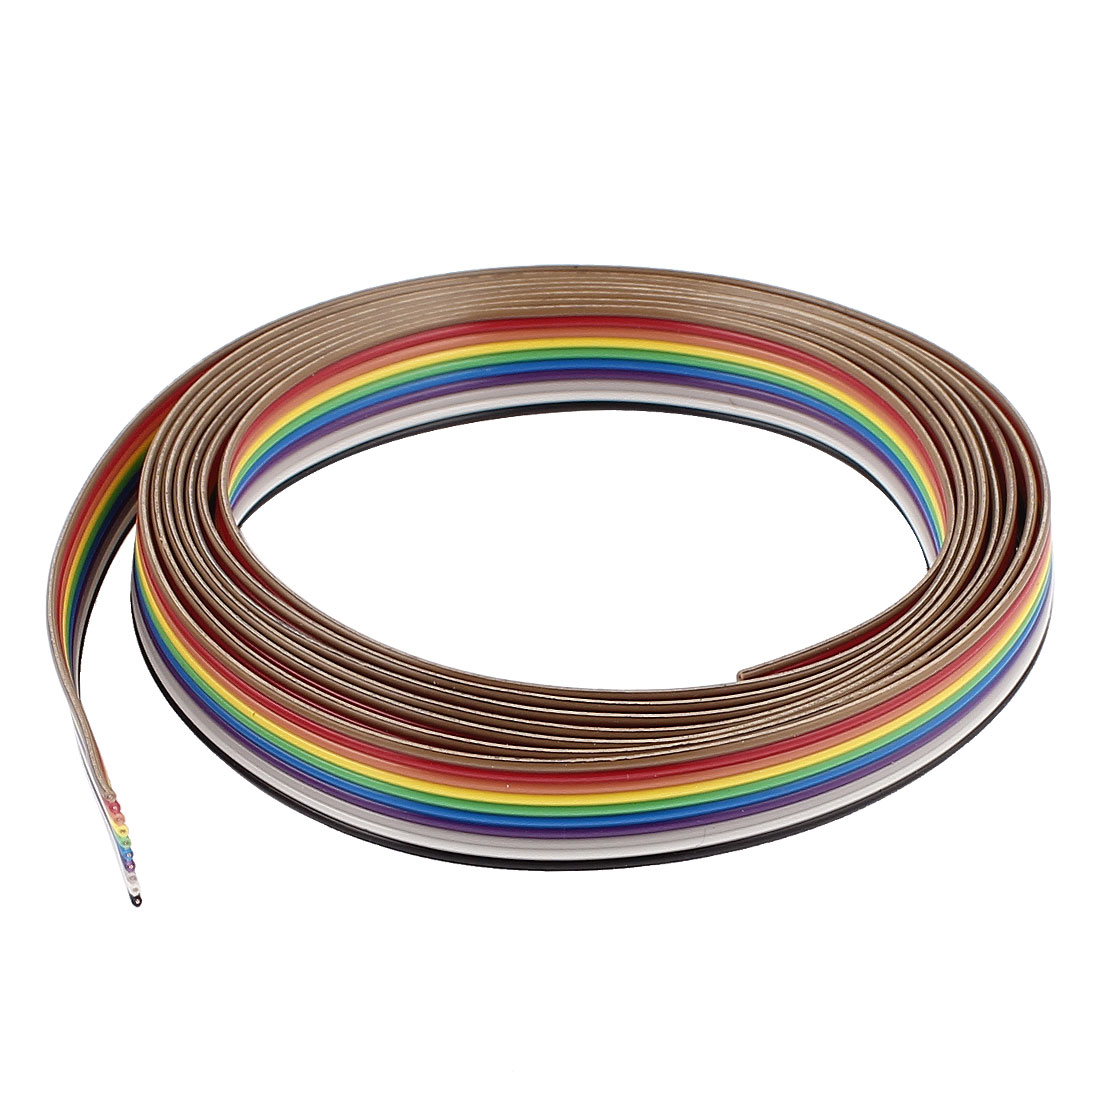 2m 6.5ft 10 Pin Conductor Rainbow Color IDC Flat Ribbon Cable 1.27mm for Arduino